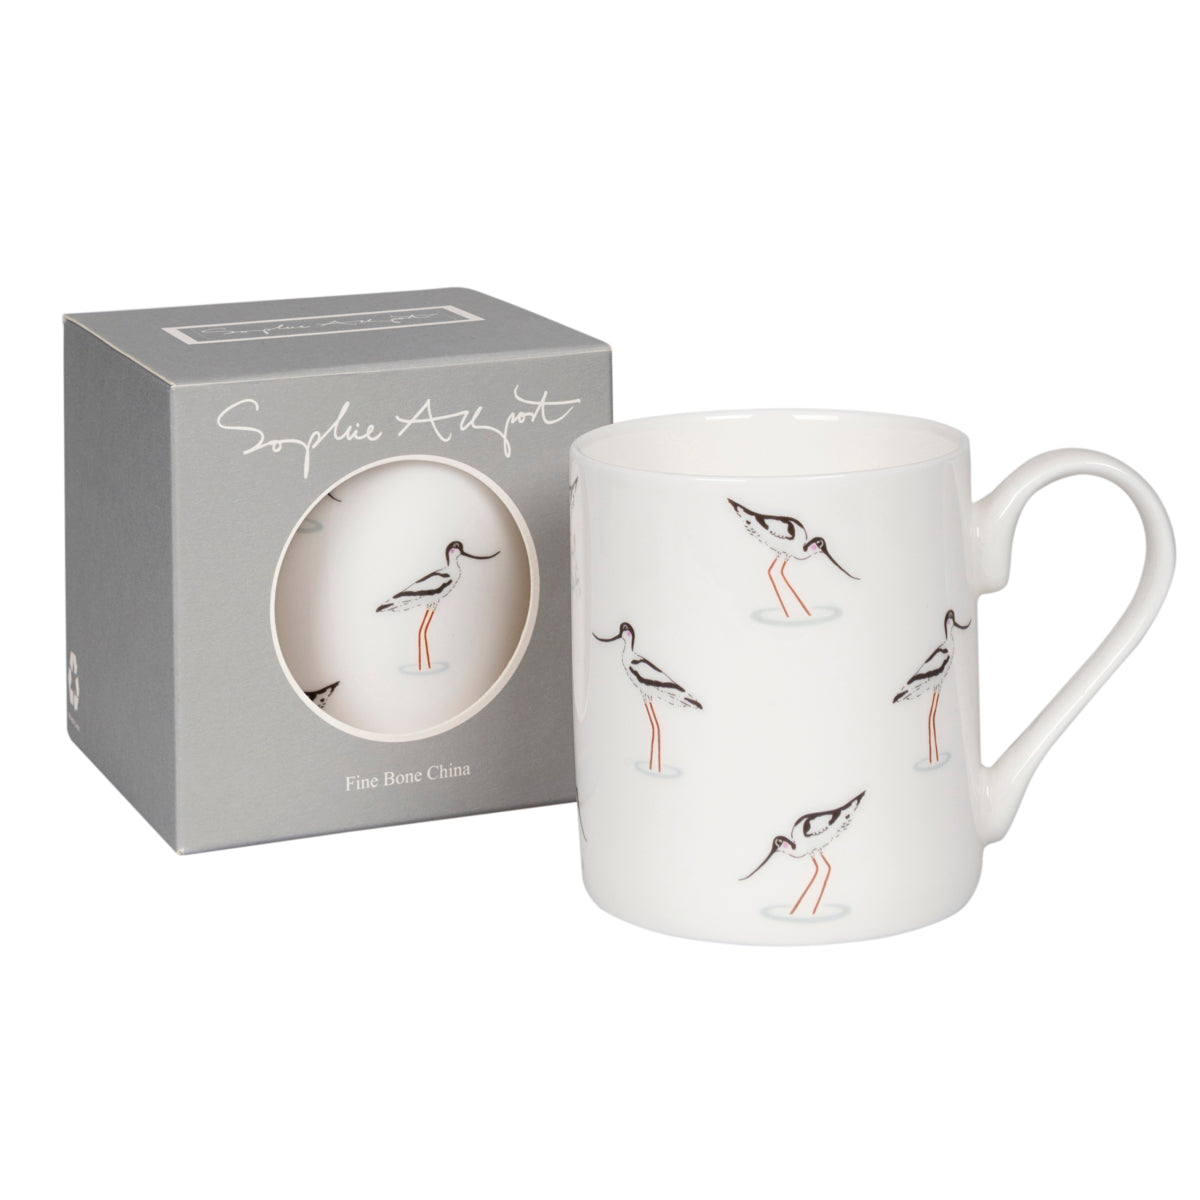 Sophie Allport Fine Bone China Coastal Birds Mug